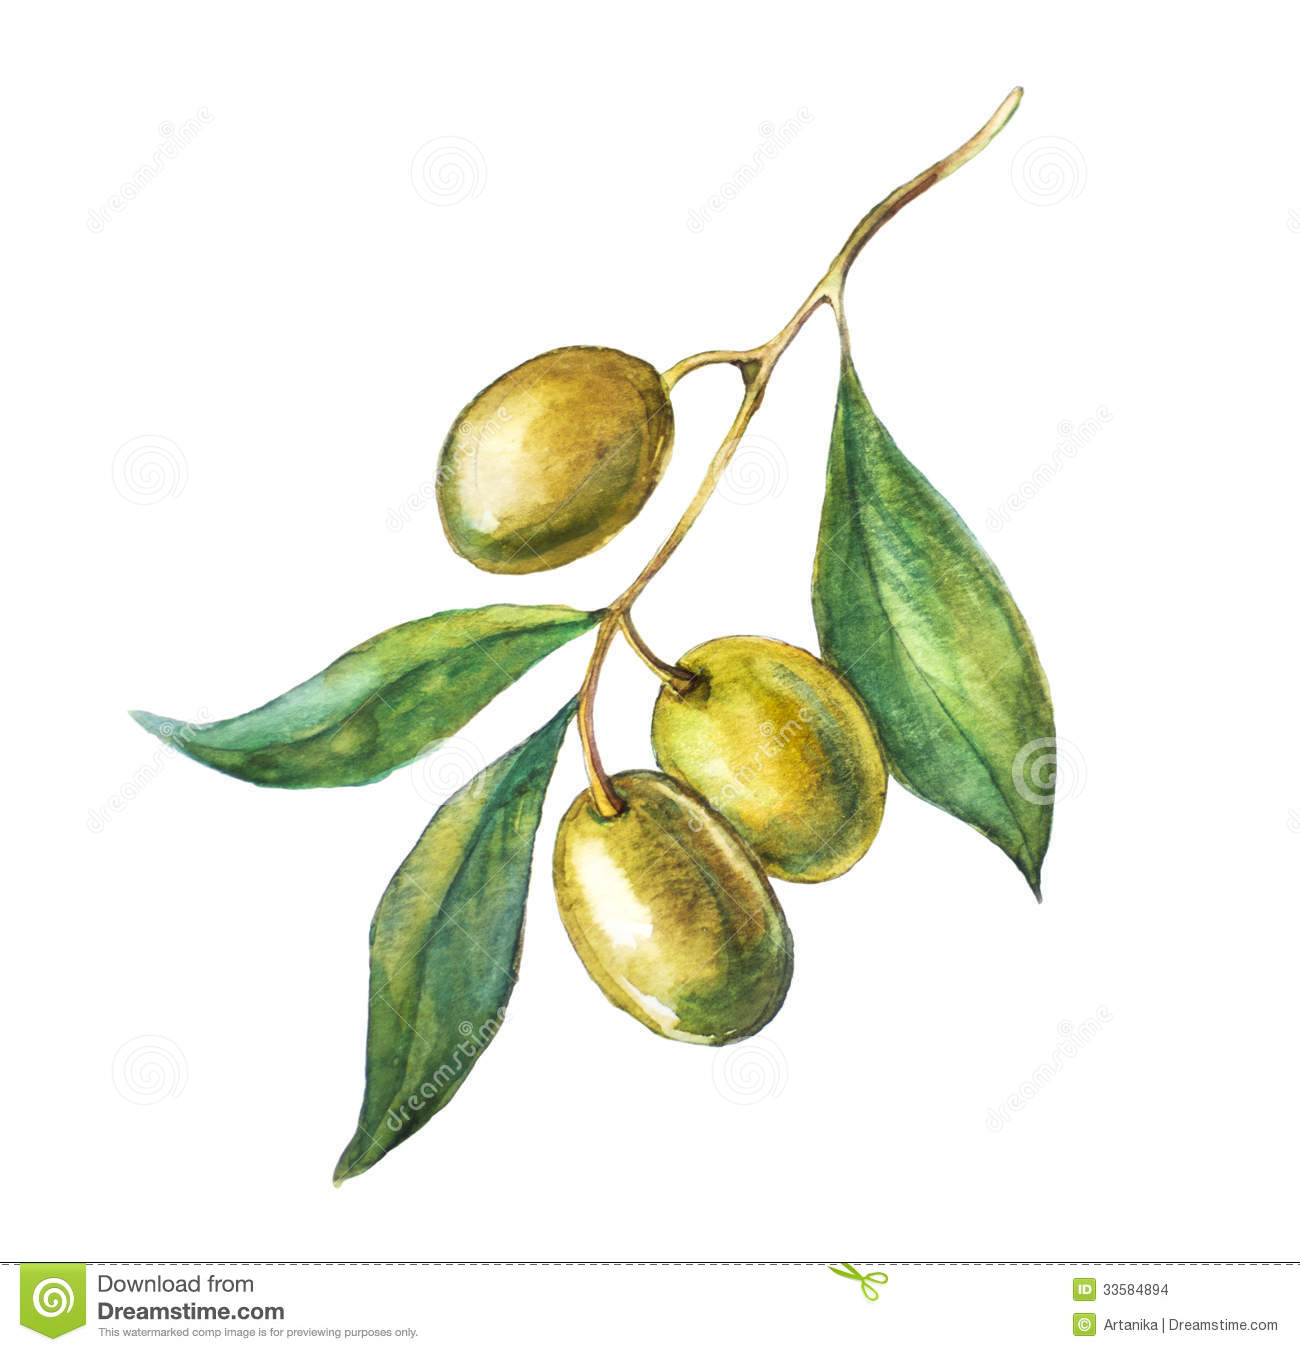 Green Olive Branch Stock Images - Image: 33584894 Оливки Рисунок